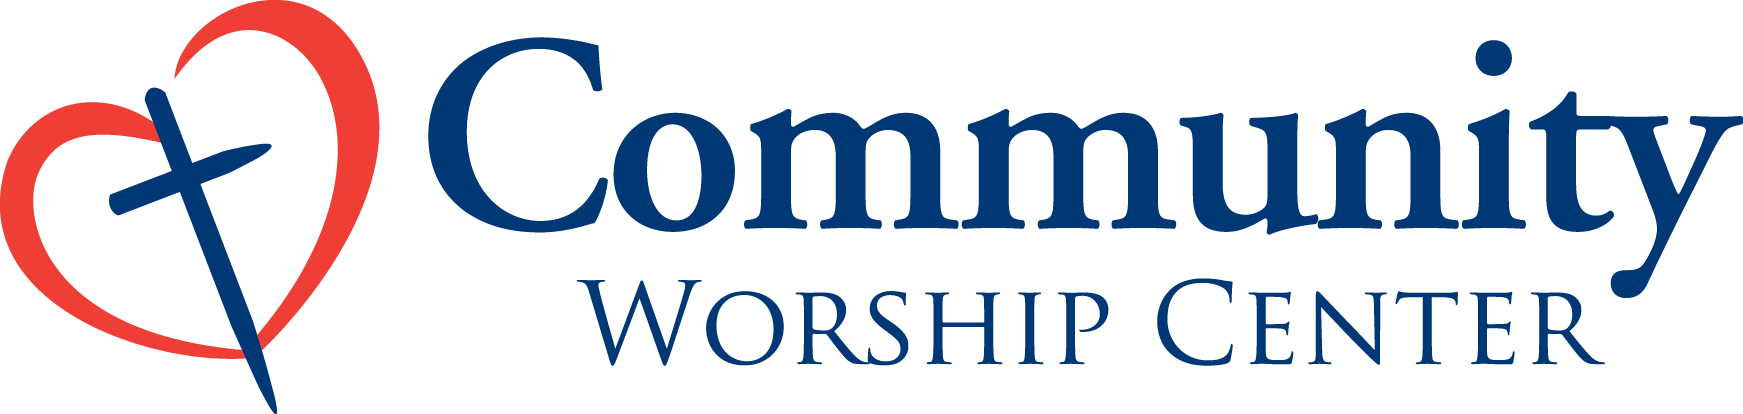 Community Worship Center